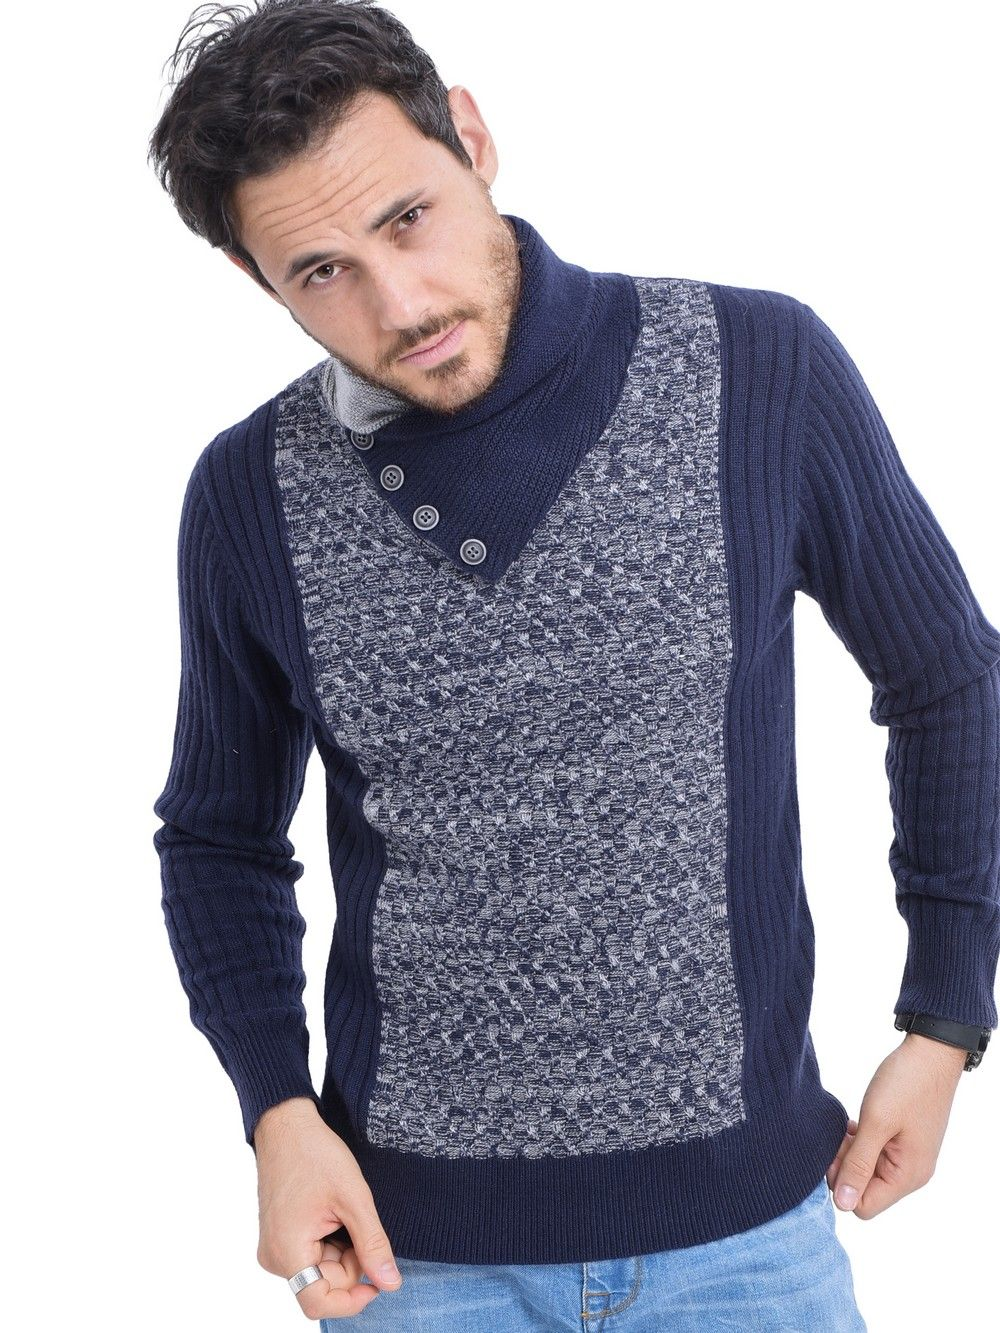 C&JO Shawl Collar Jacquard Sweater with Butons in Navy